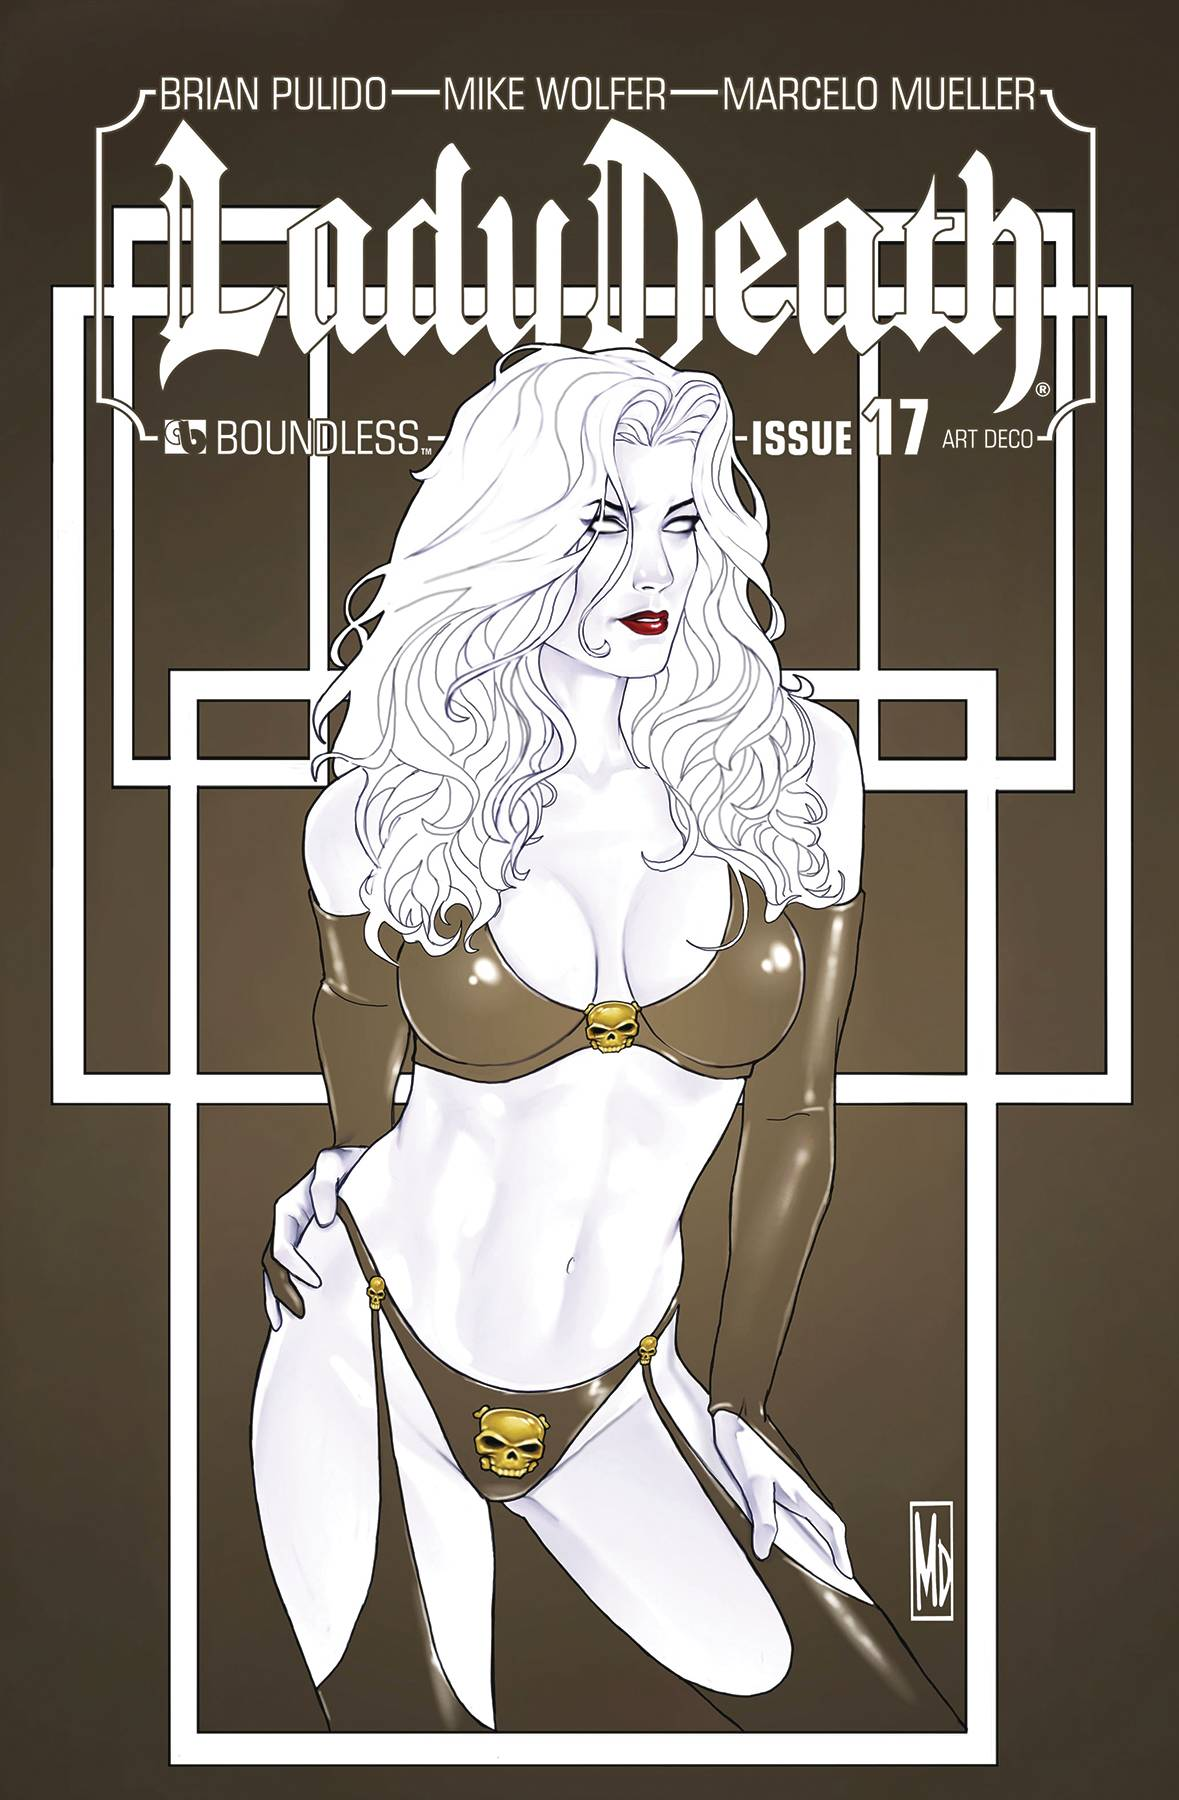 LADY DEATH #17 ART DECO VARIANT